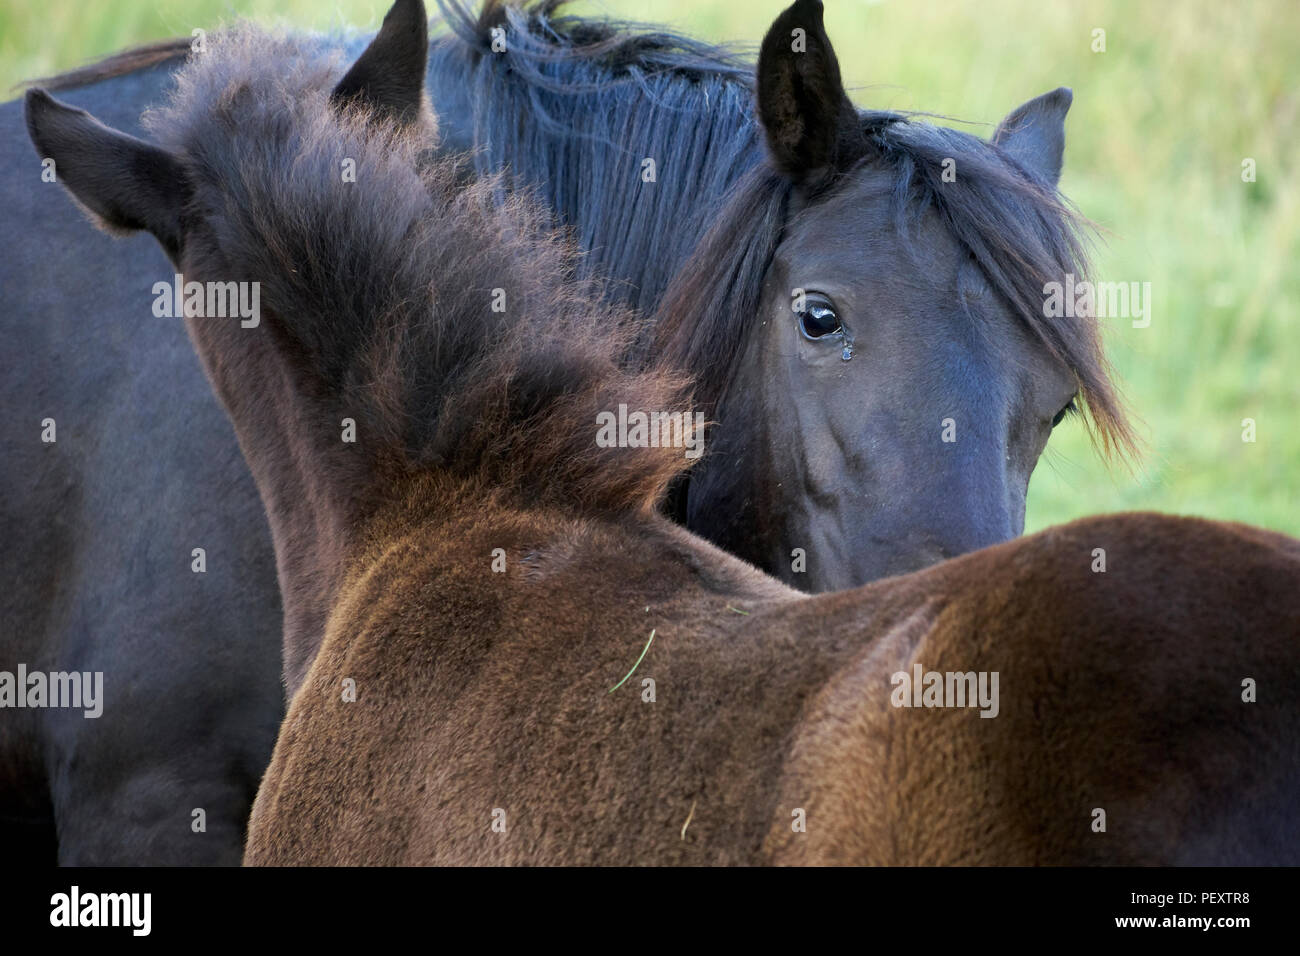 Wild horse reintroduction for ecological restoration and rewilding horses, reintroduction for ecological restoration - Stock Image